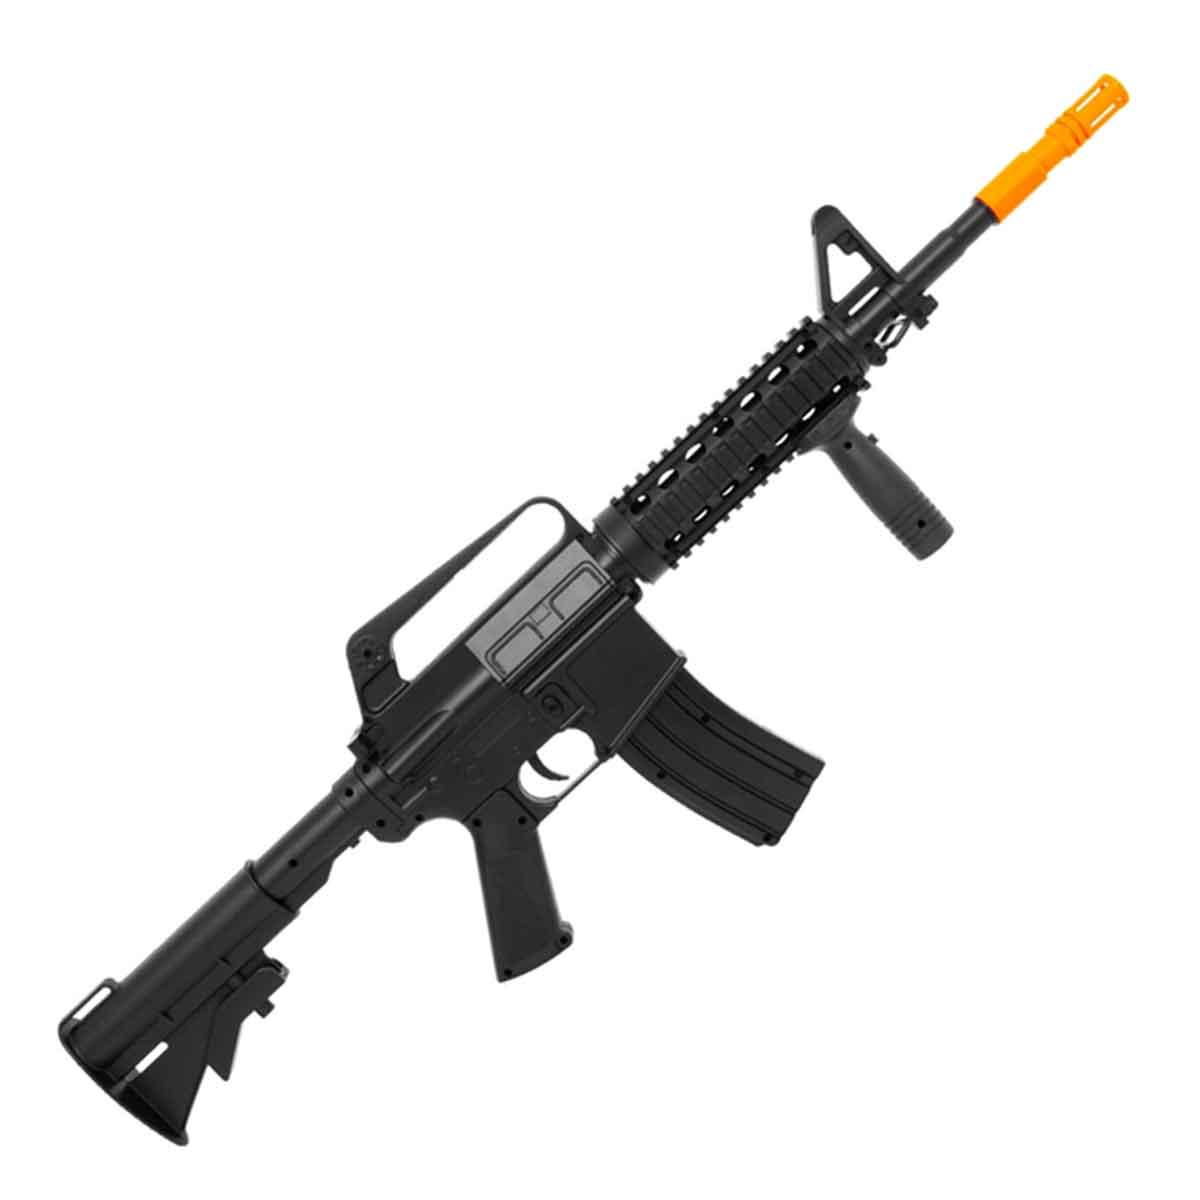 Rifle de Airsoft Spring VG M16RIS 8905A Calibre 6mm